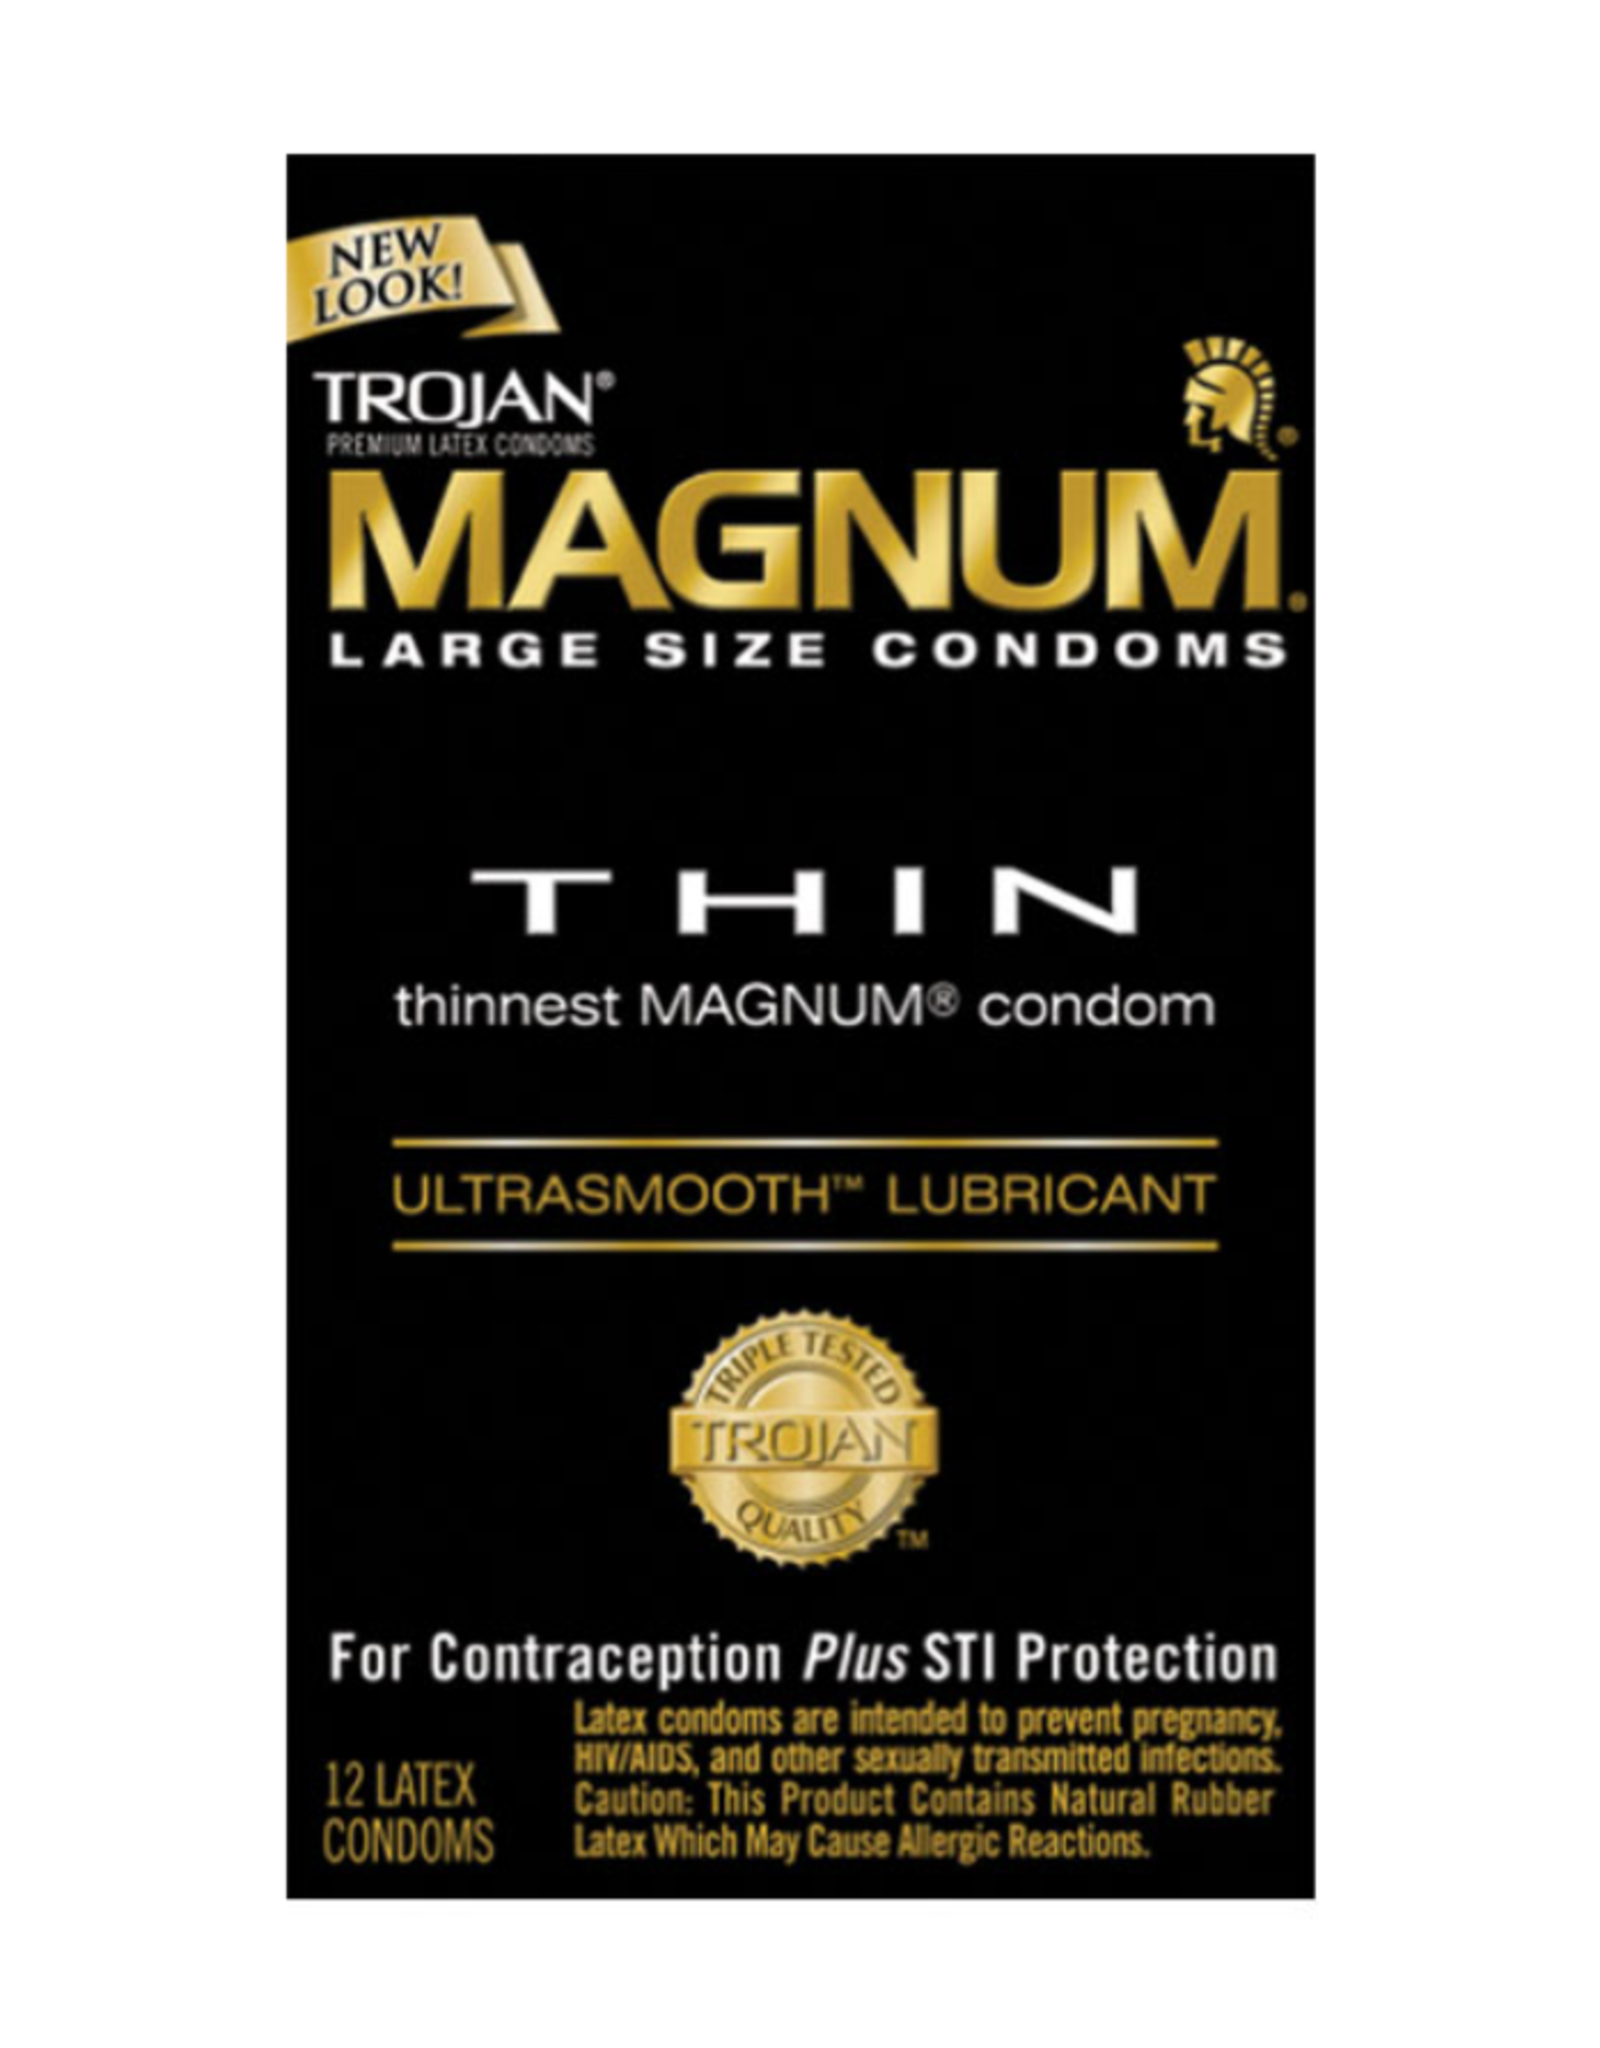 Trojan Magnum Large Thin with Ultrasmooth Lubricant 12pk